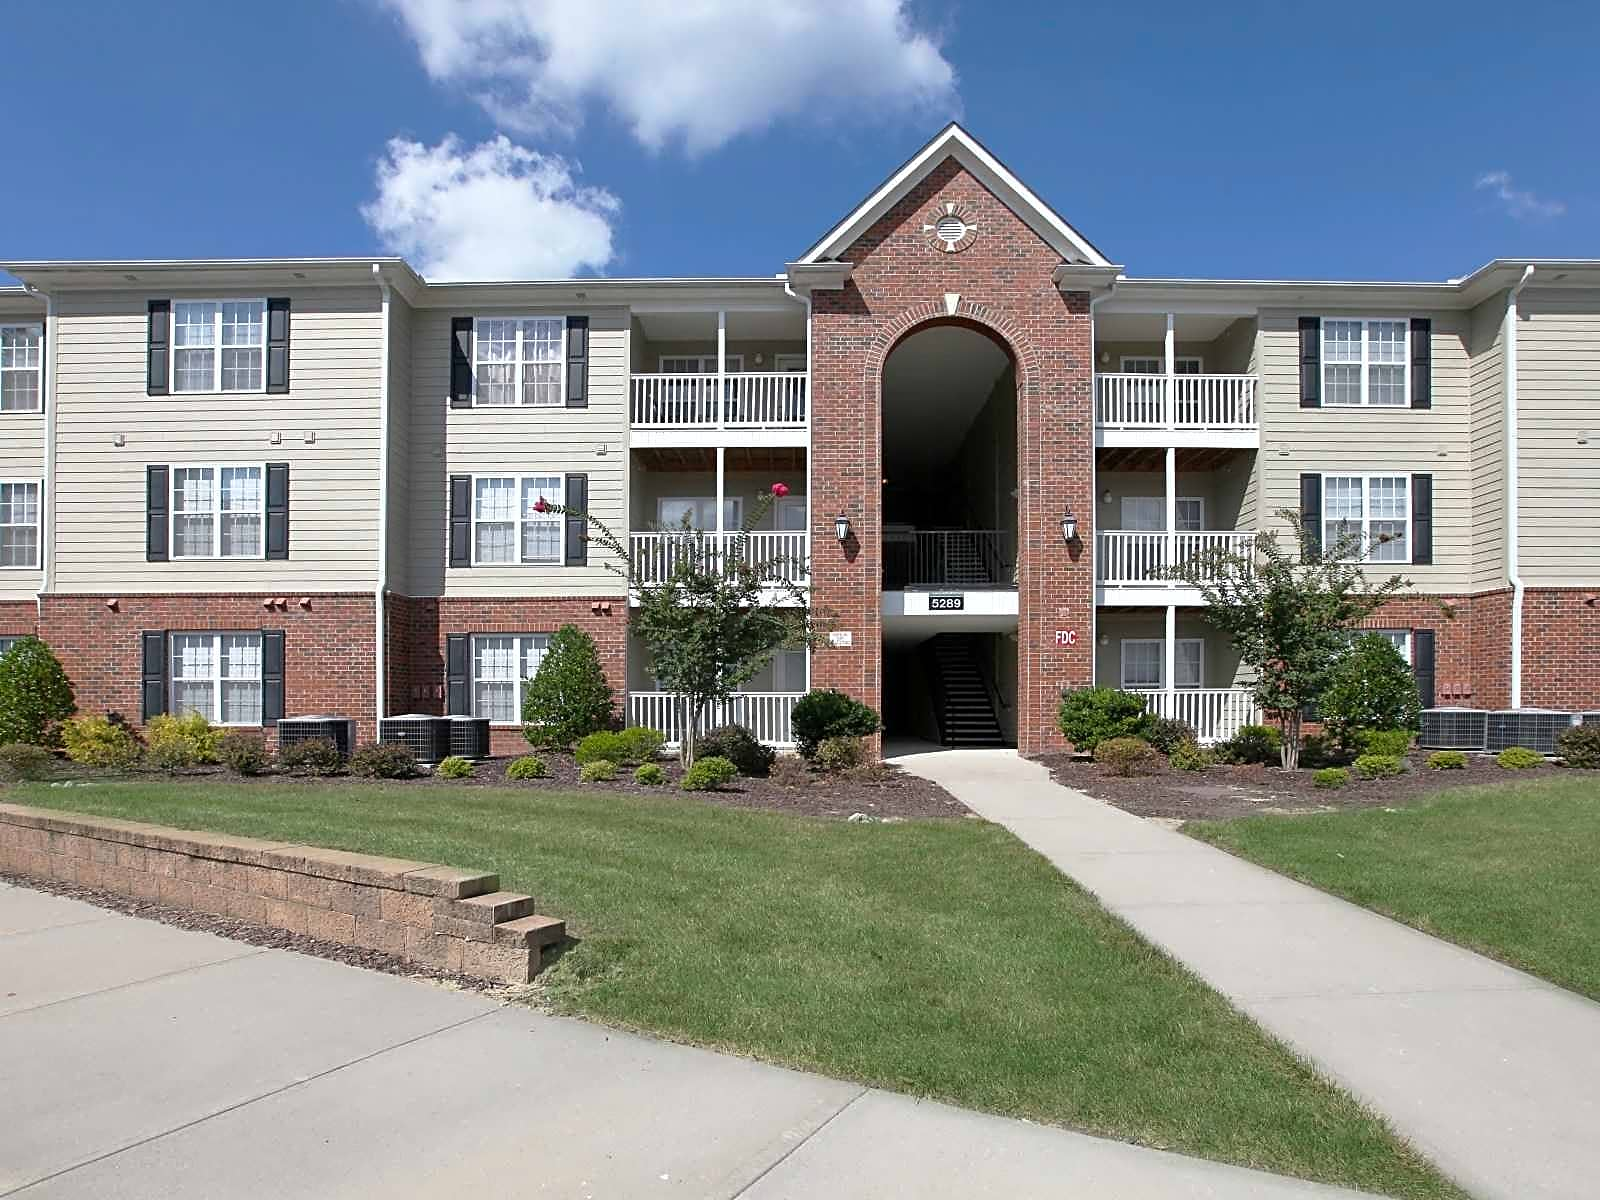 The Twin Oaks Apartments